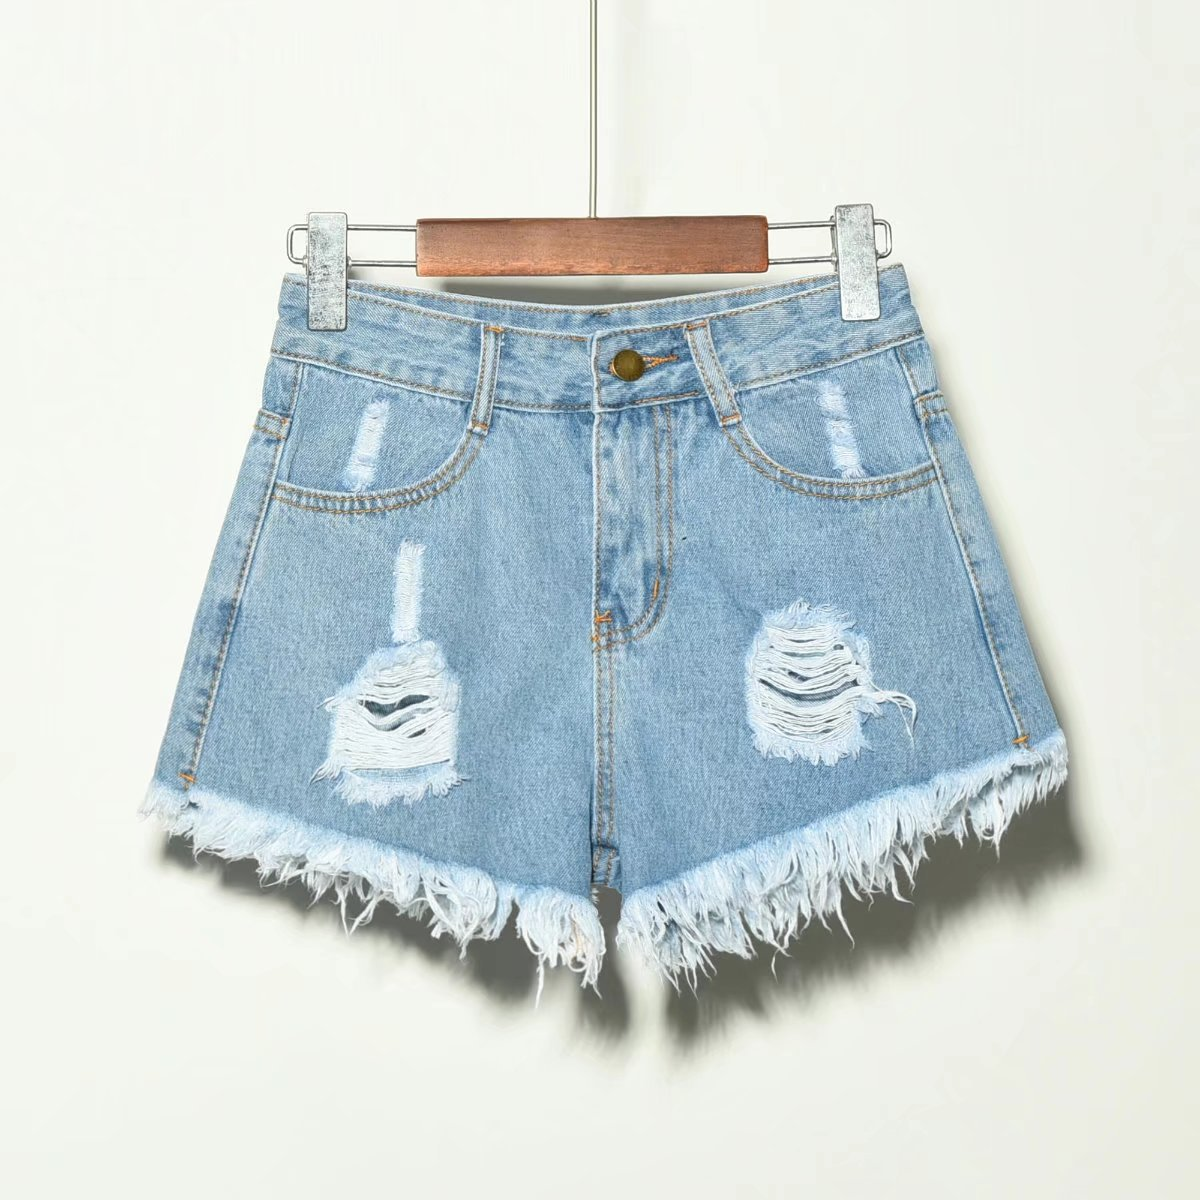 With Holes Irregular Cat Fringed Denim Shorts Women's High Waist Pants New Style 2019 Summer White Shorts Hot Pants Black And Wh